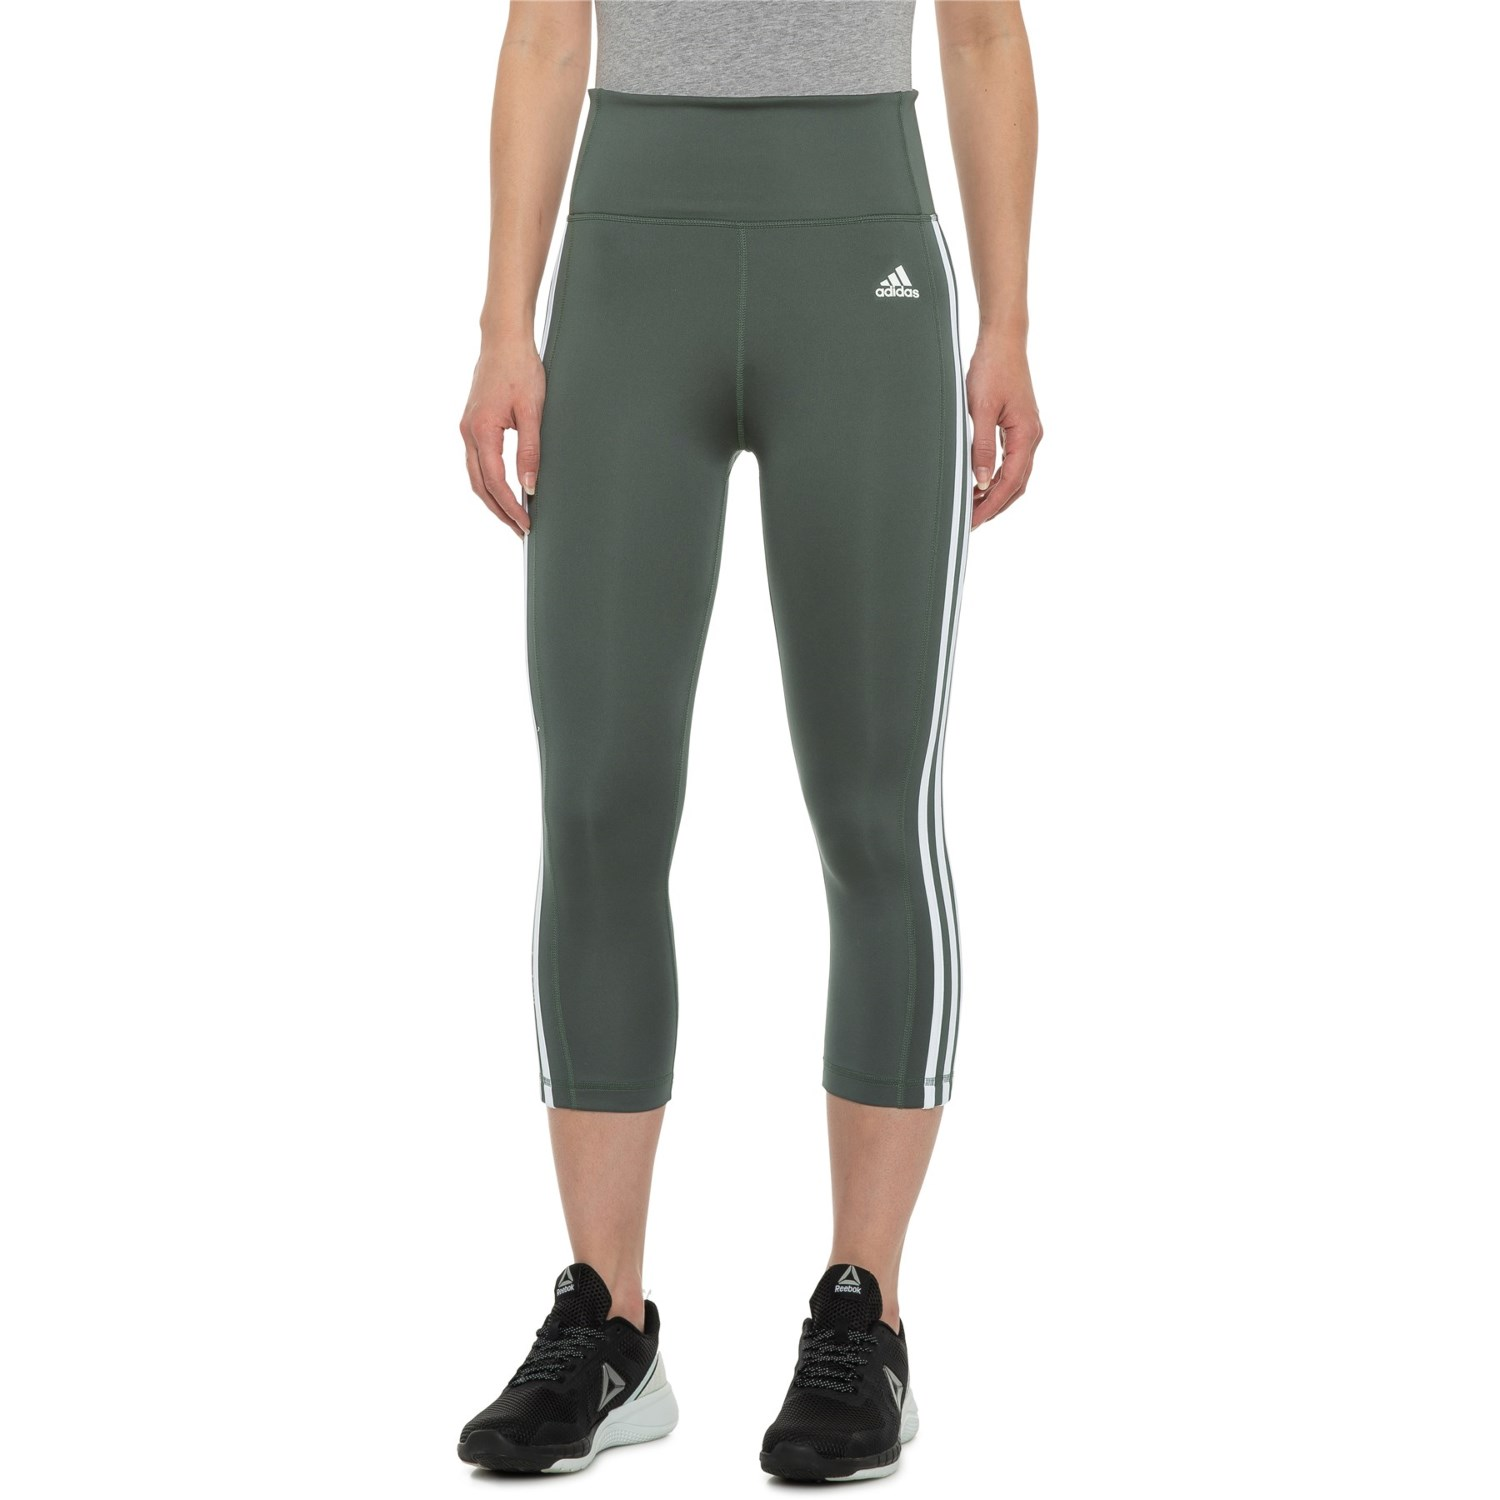 medallista ocupado permanecer  adidas Three-Stripe 3/4 Tights (For Women) - Save 31%